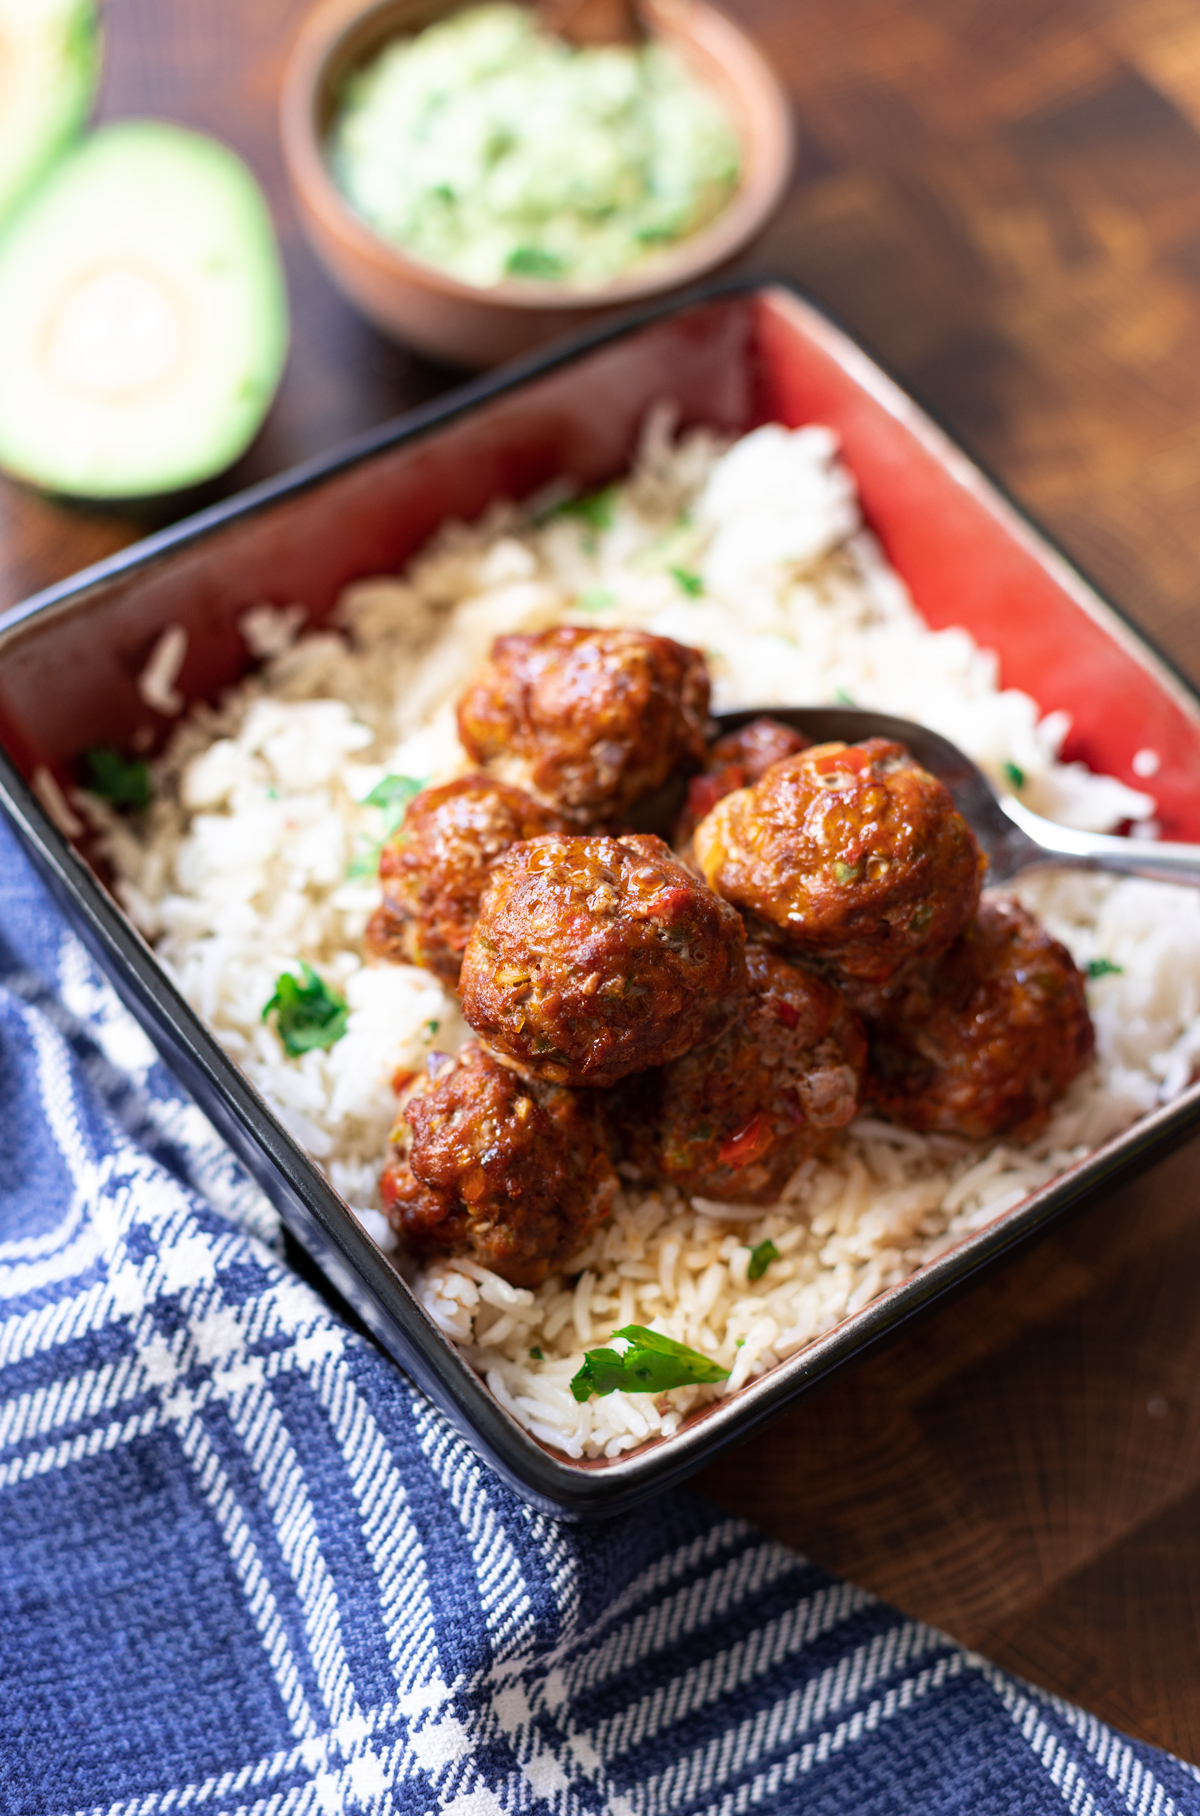 bowl containing rice topped with meatballs, avocado sauce in a dish on table.